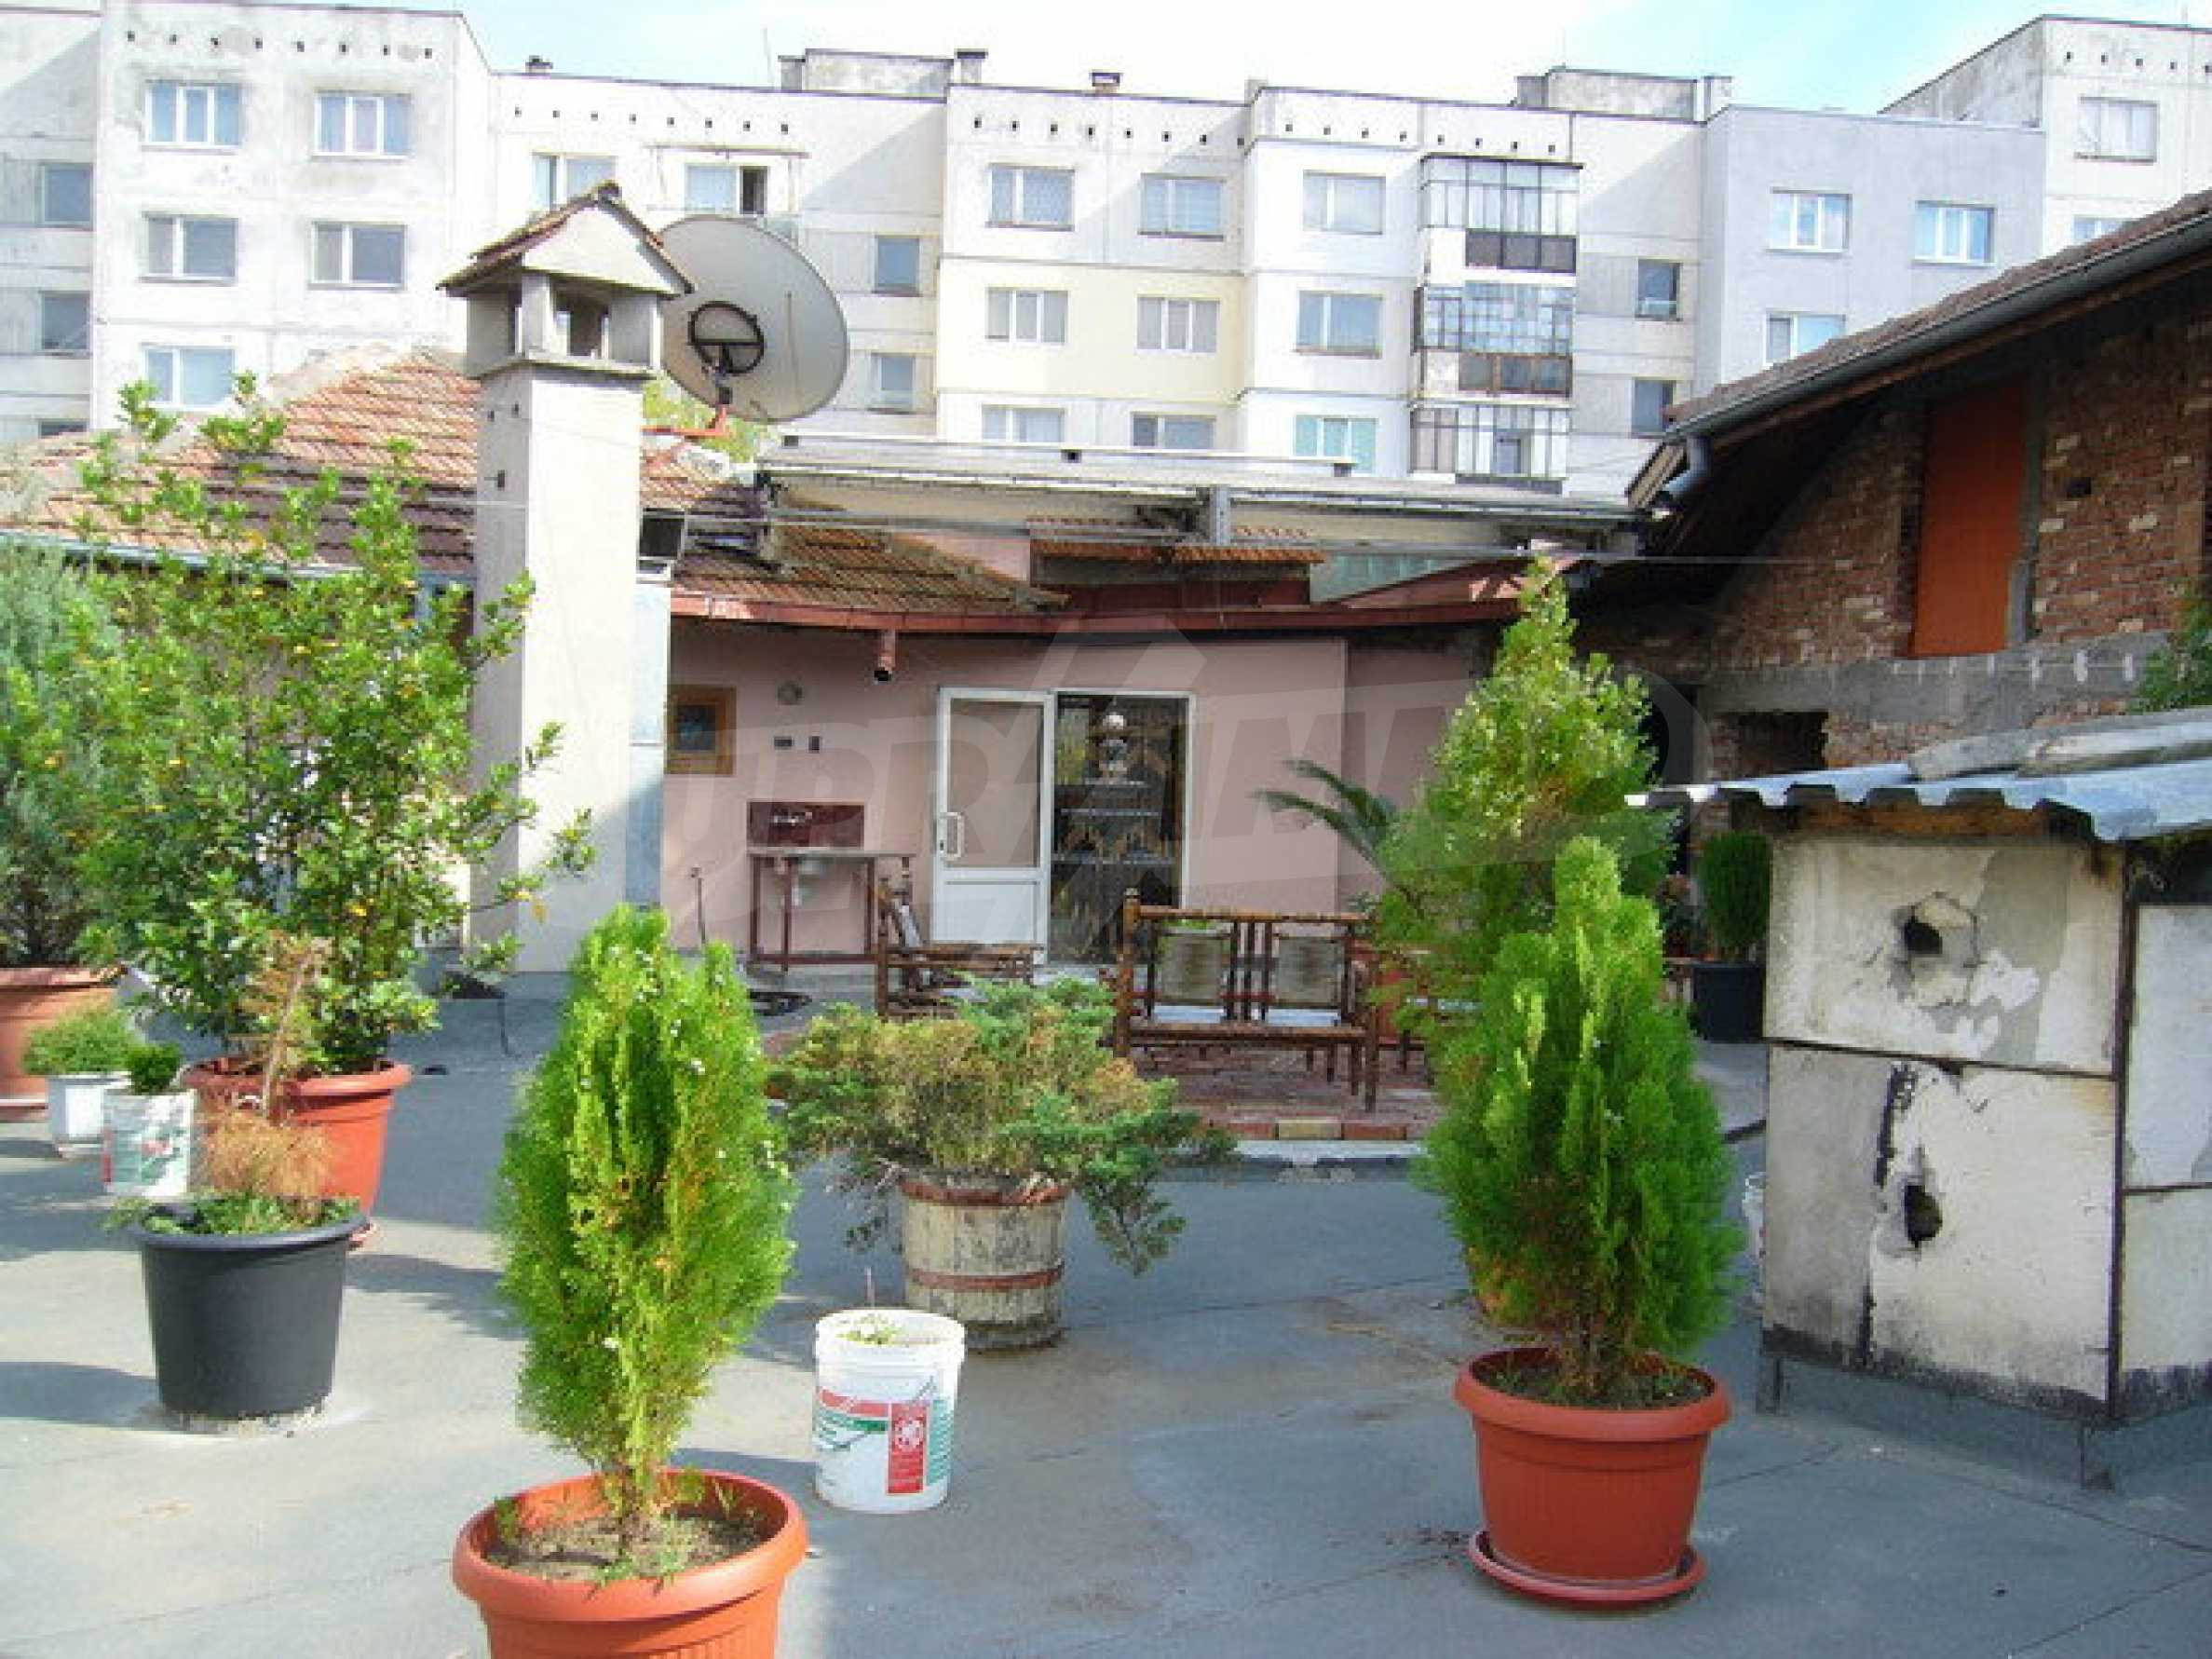 Commercial property on 3 levels for sale in Veliko Tarnovo  37